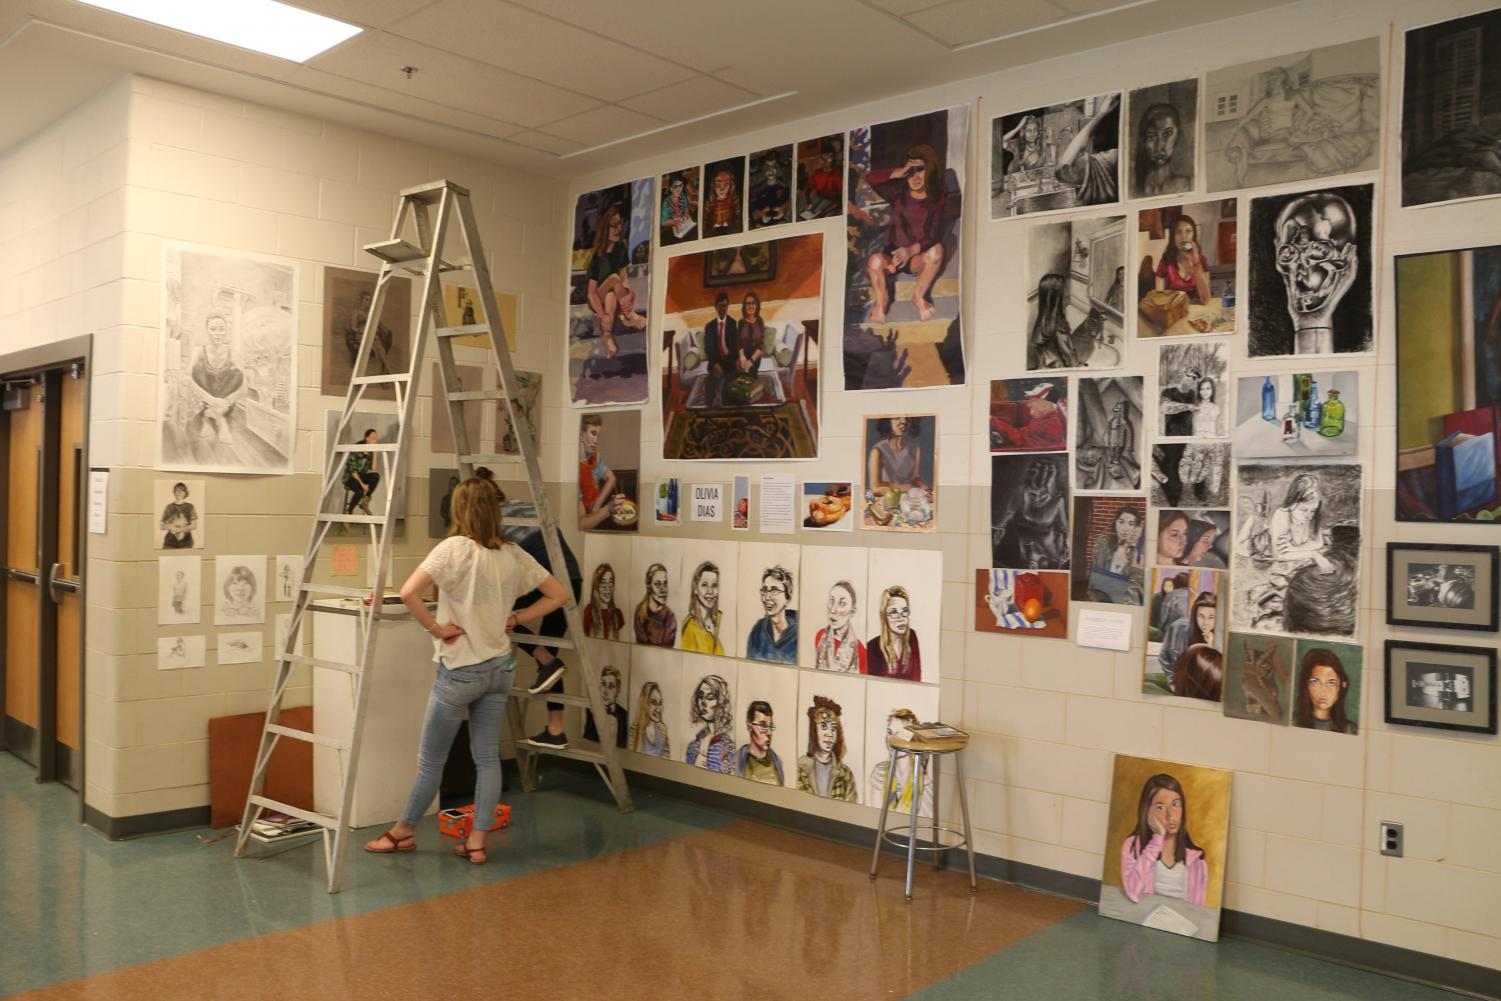 Hereford graduates set up their displays for the annual art show in the caffeteria. The AP Studio students showed off their portfolios to guests.